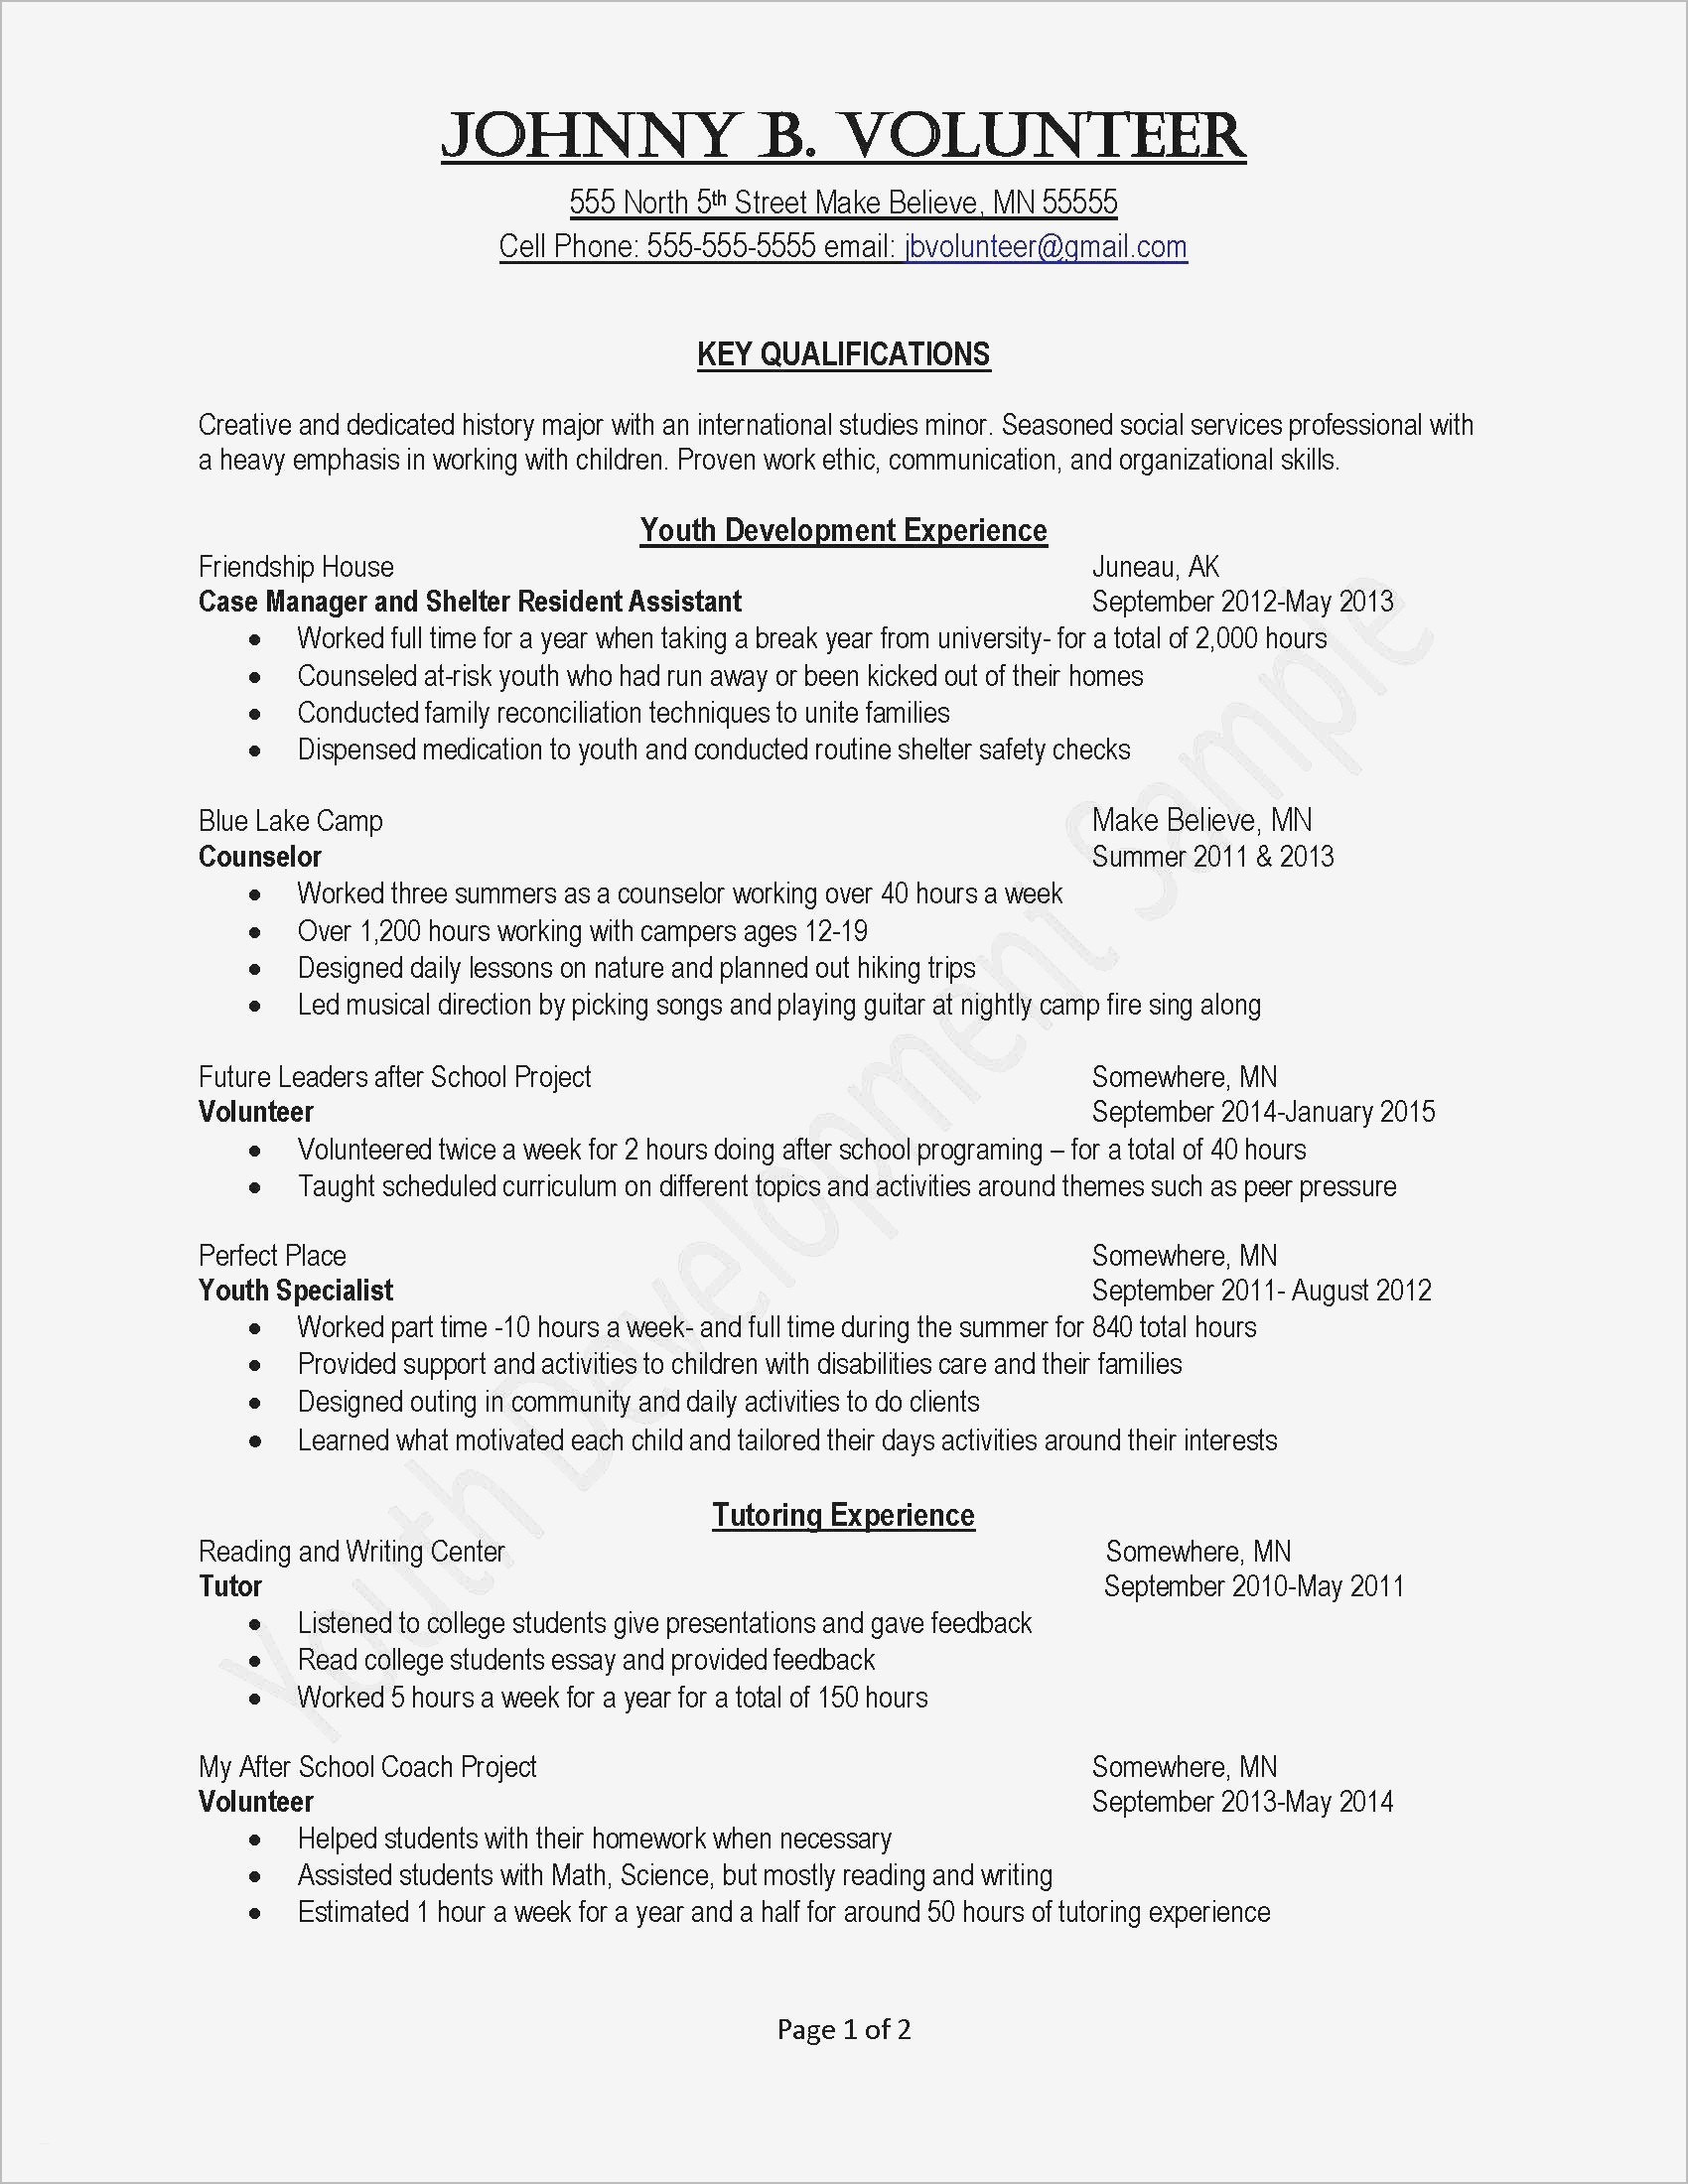 Job Application Letter Template - Resume and Cover Letter Template Elegant Activities Resume Template